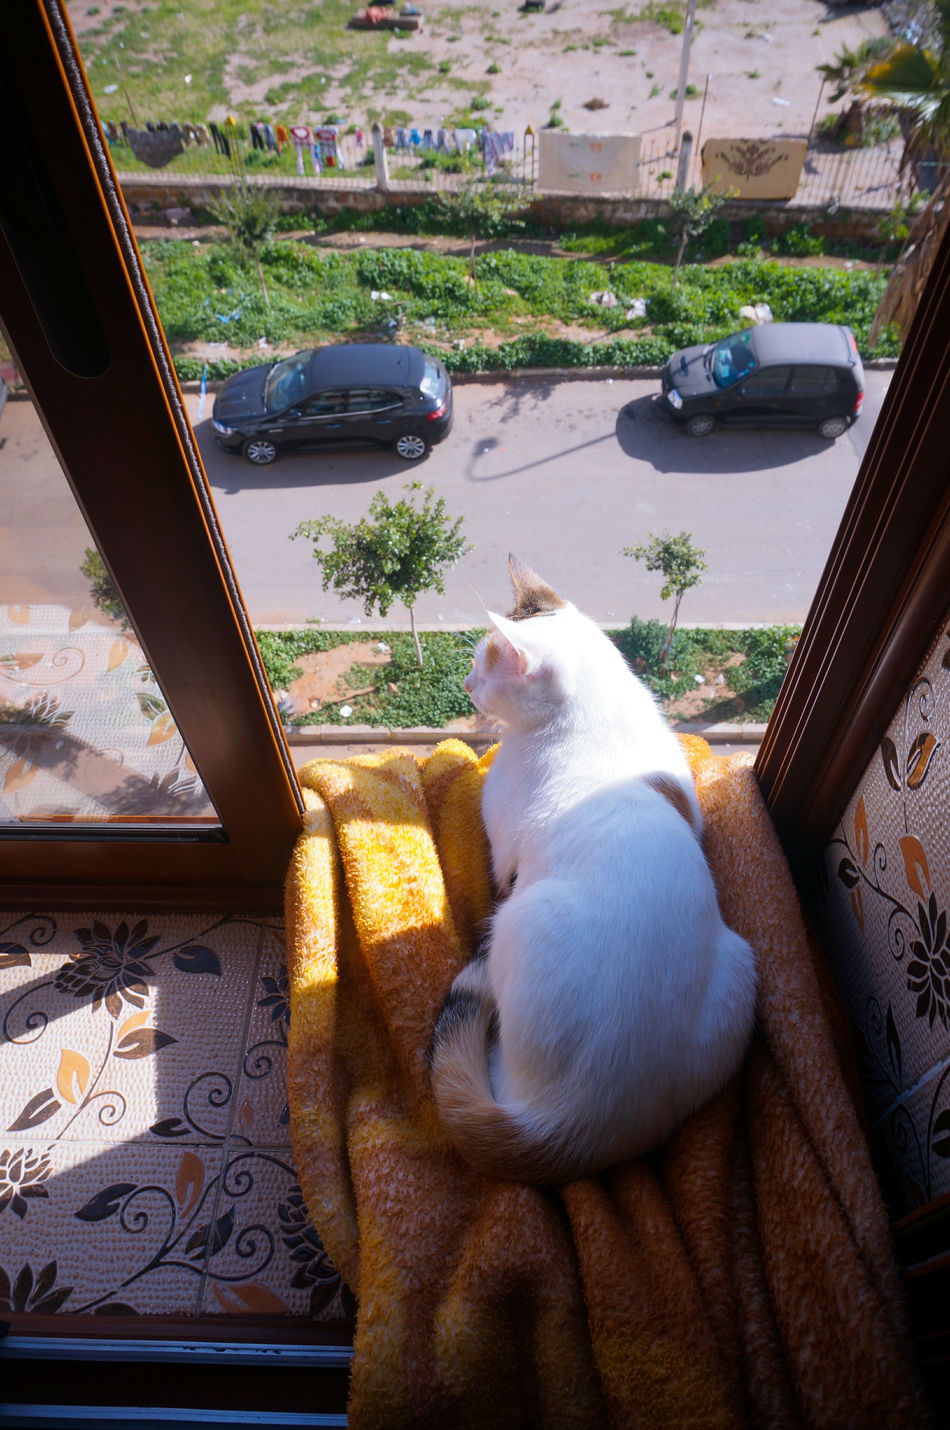 3rdFloor because she never listens! She's a Cat 🐈 Chilling Striking A Pose Like A Boss Seniora Not Afraid Heights Not Afraid Of Heights Yoga Session Sunbathing Feeling Awesome Feline Catitude Caturday Cats Cat Lovers Cat Lover Beautiful Beauty Window View Peeping Tom Curious Curious Cat Checking Out